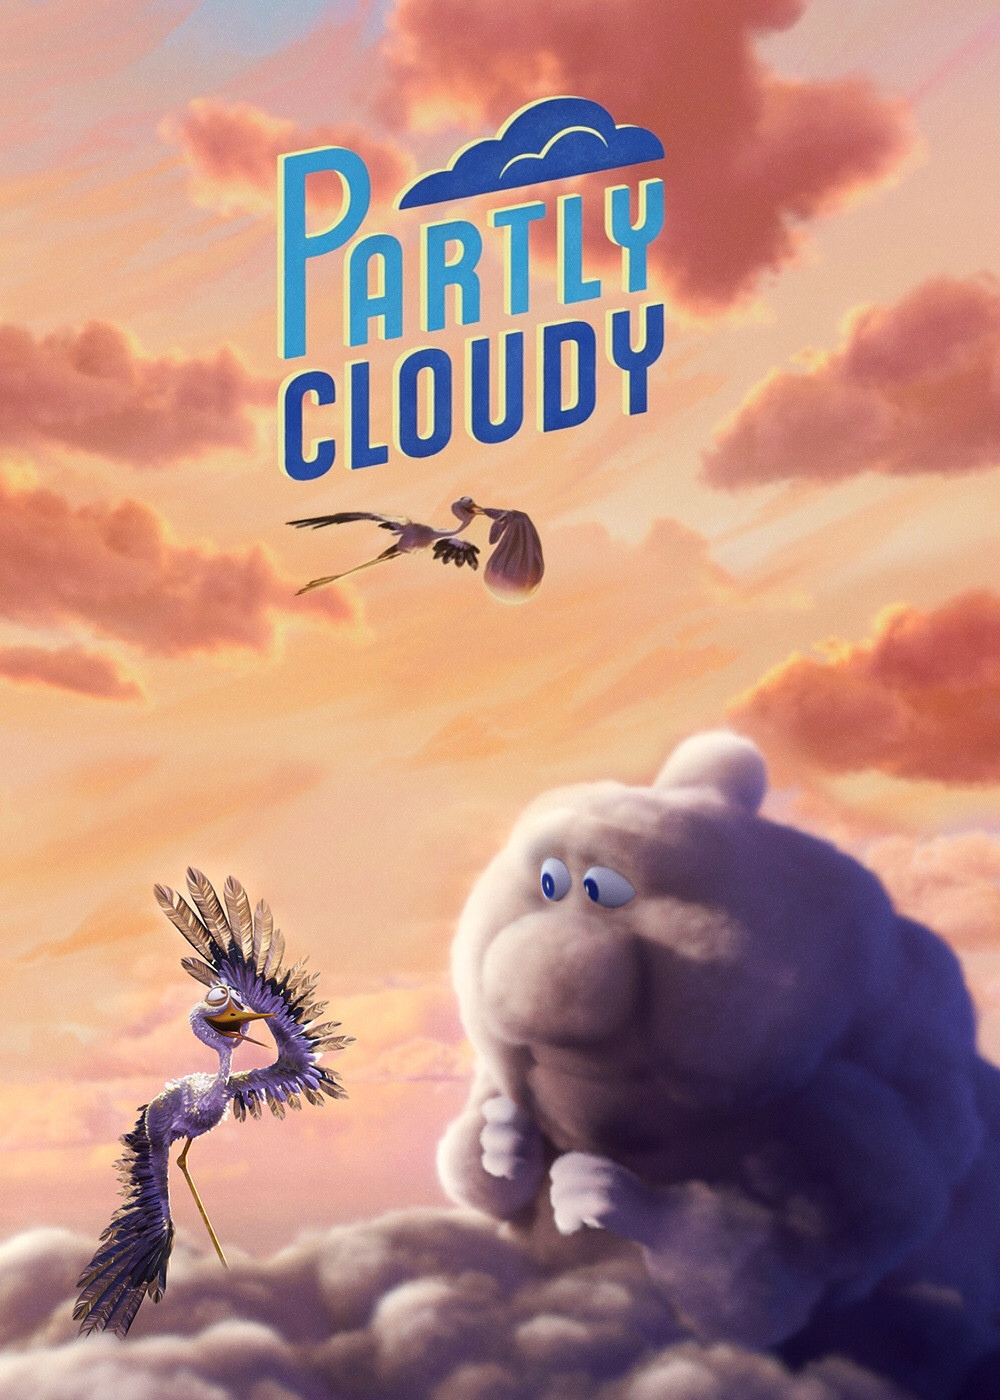 pixar disney affiche poster passages nuageaux partly cloudy